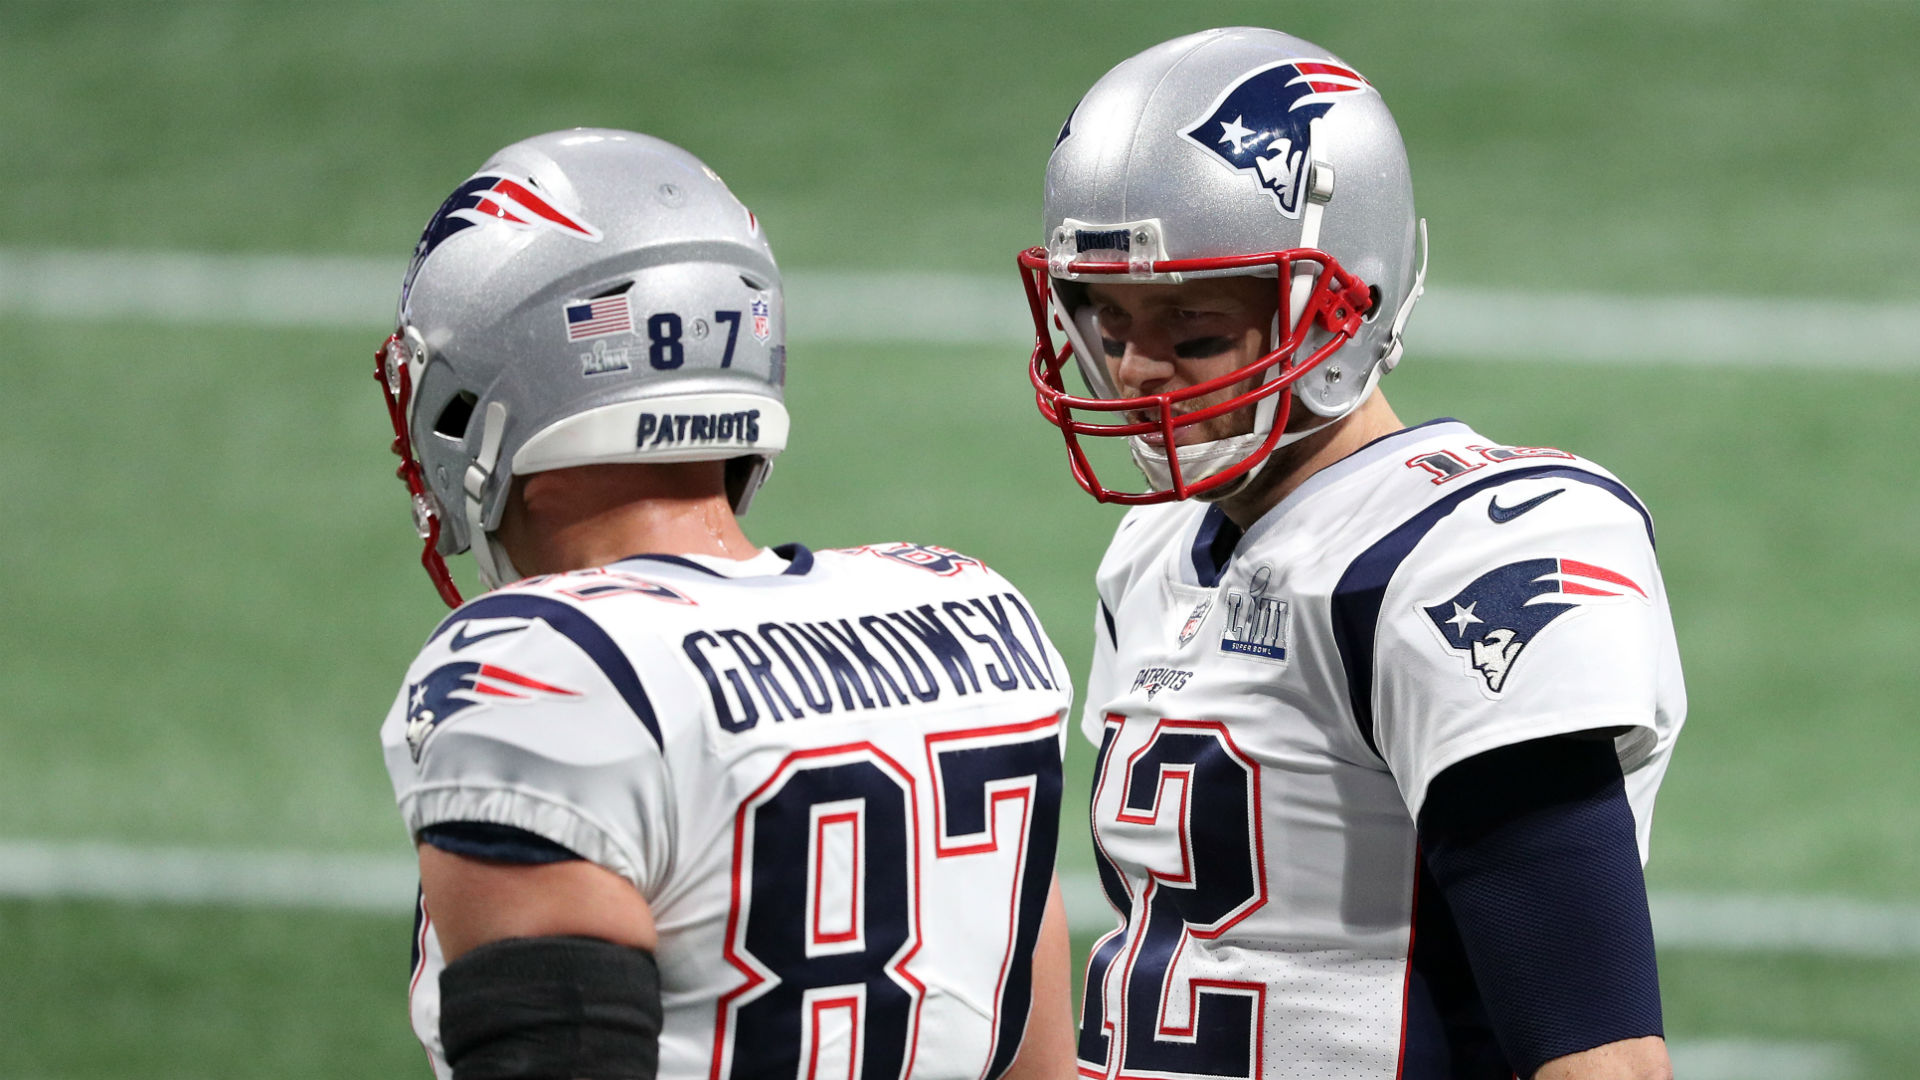 Tom Brady has been urged to see what he could command on the open market by his former New England Patriots team-mate Rob Gronkowski.